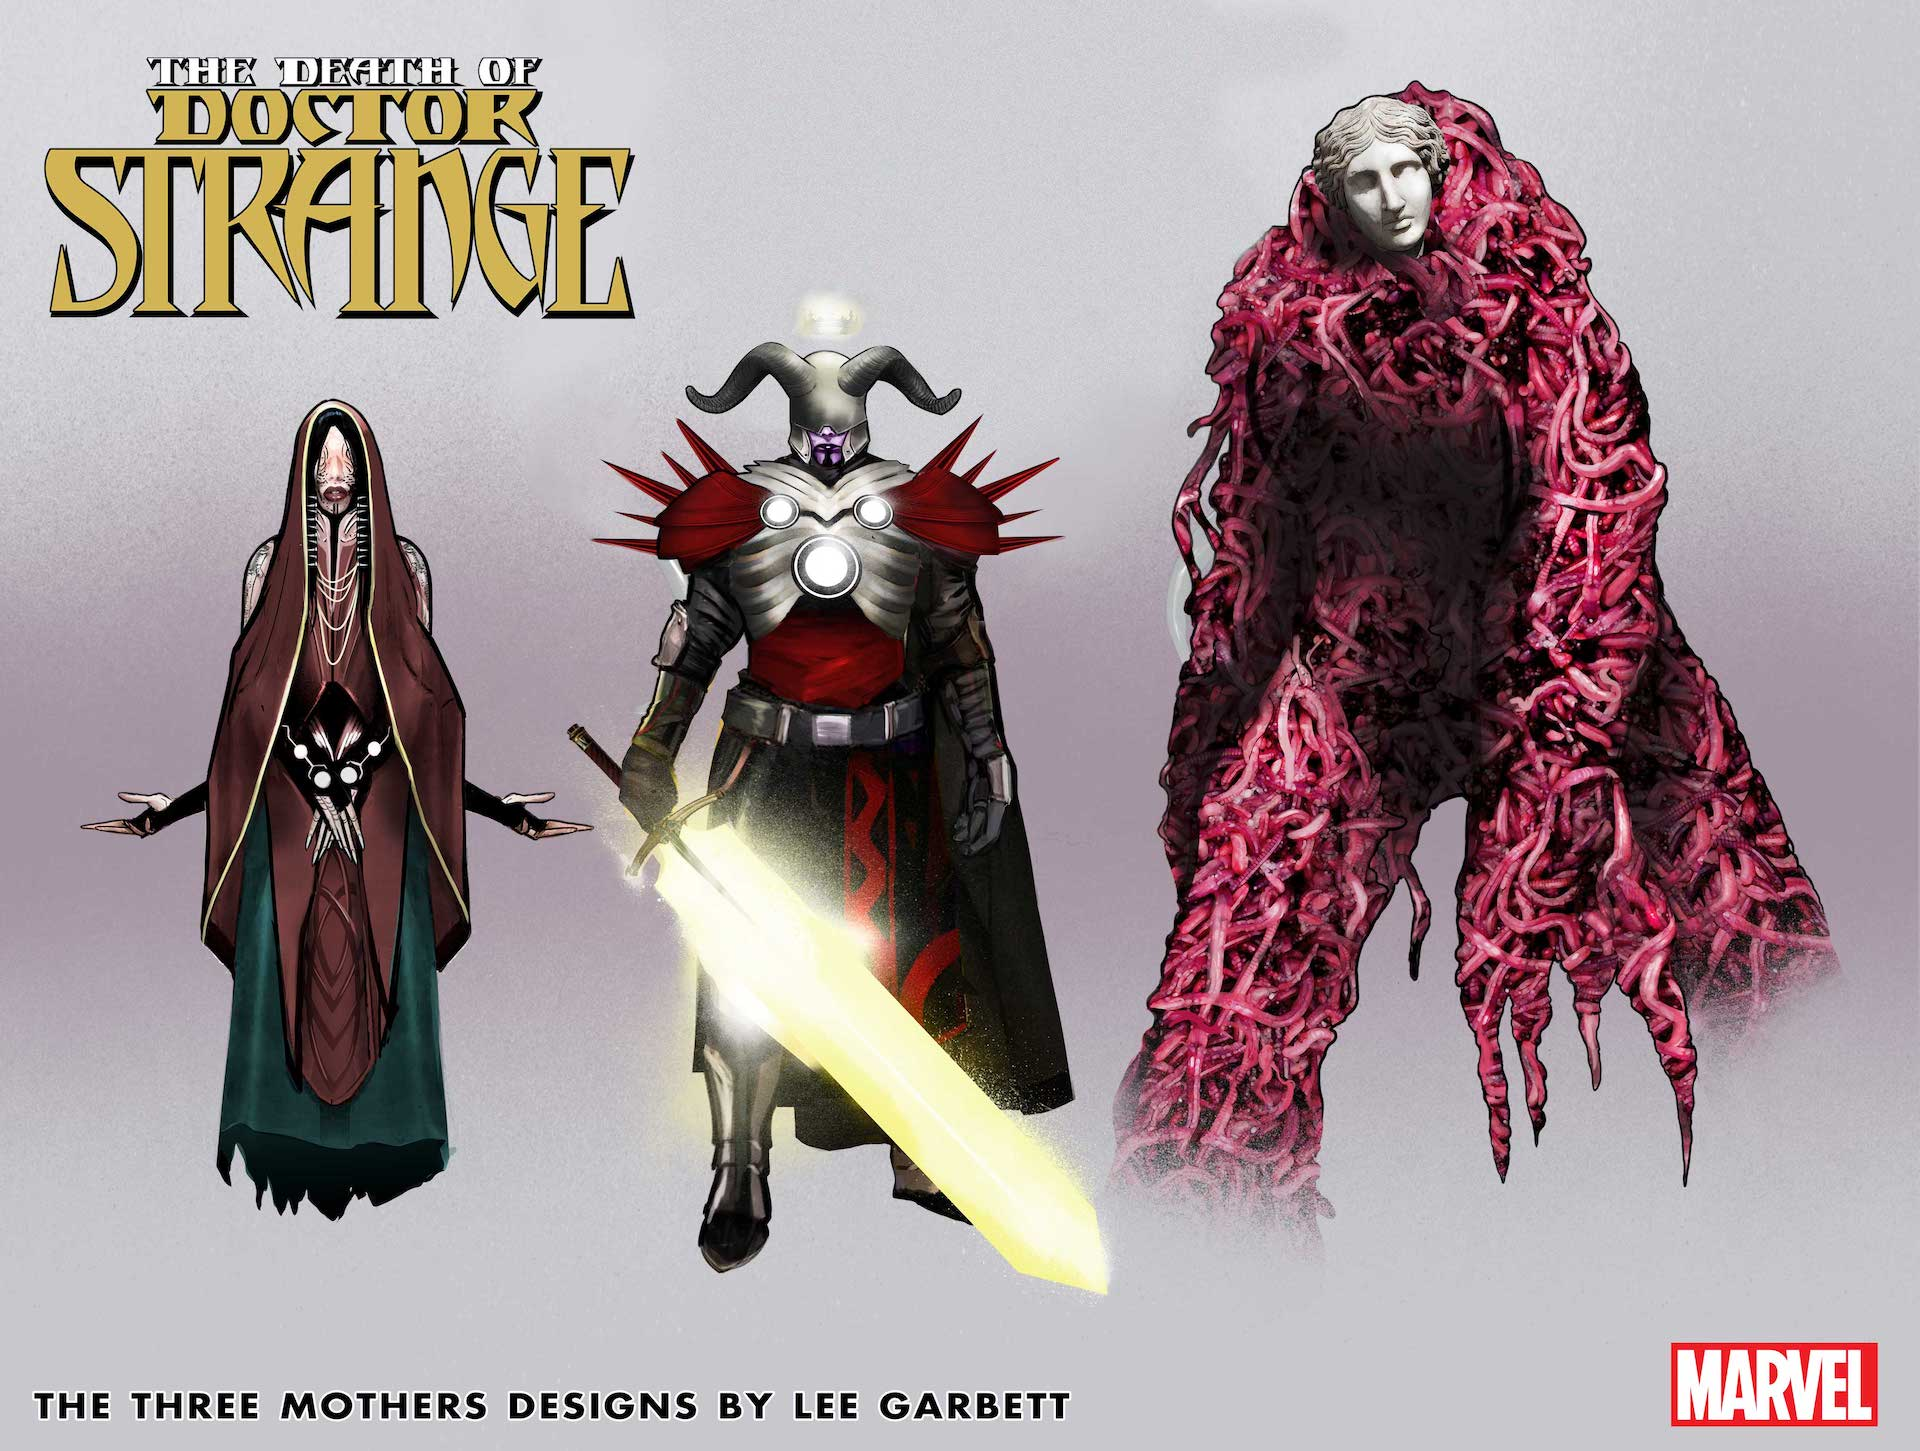 Marvel to introduce The Three Mothers in 'The Death of Doctor Strange' #3